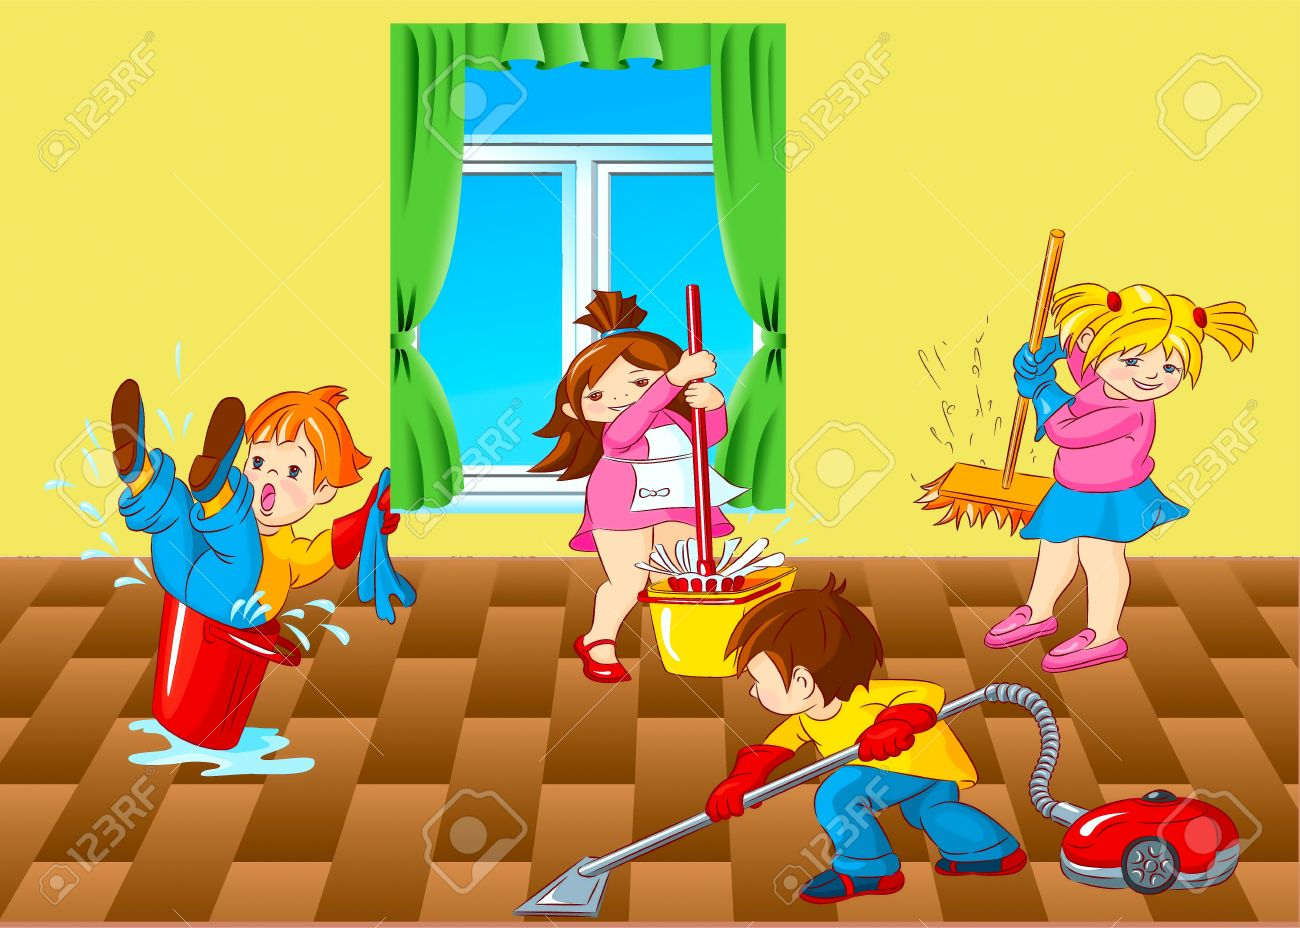 personal hygiene for kids clip art - Clip Art Library